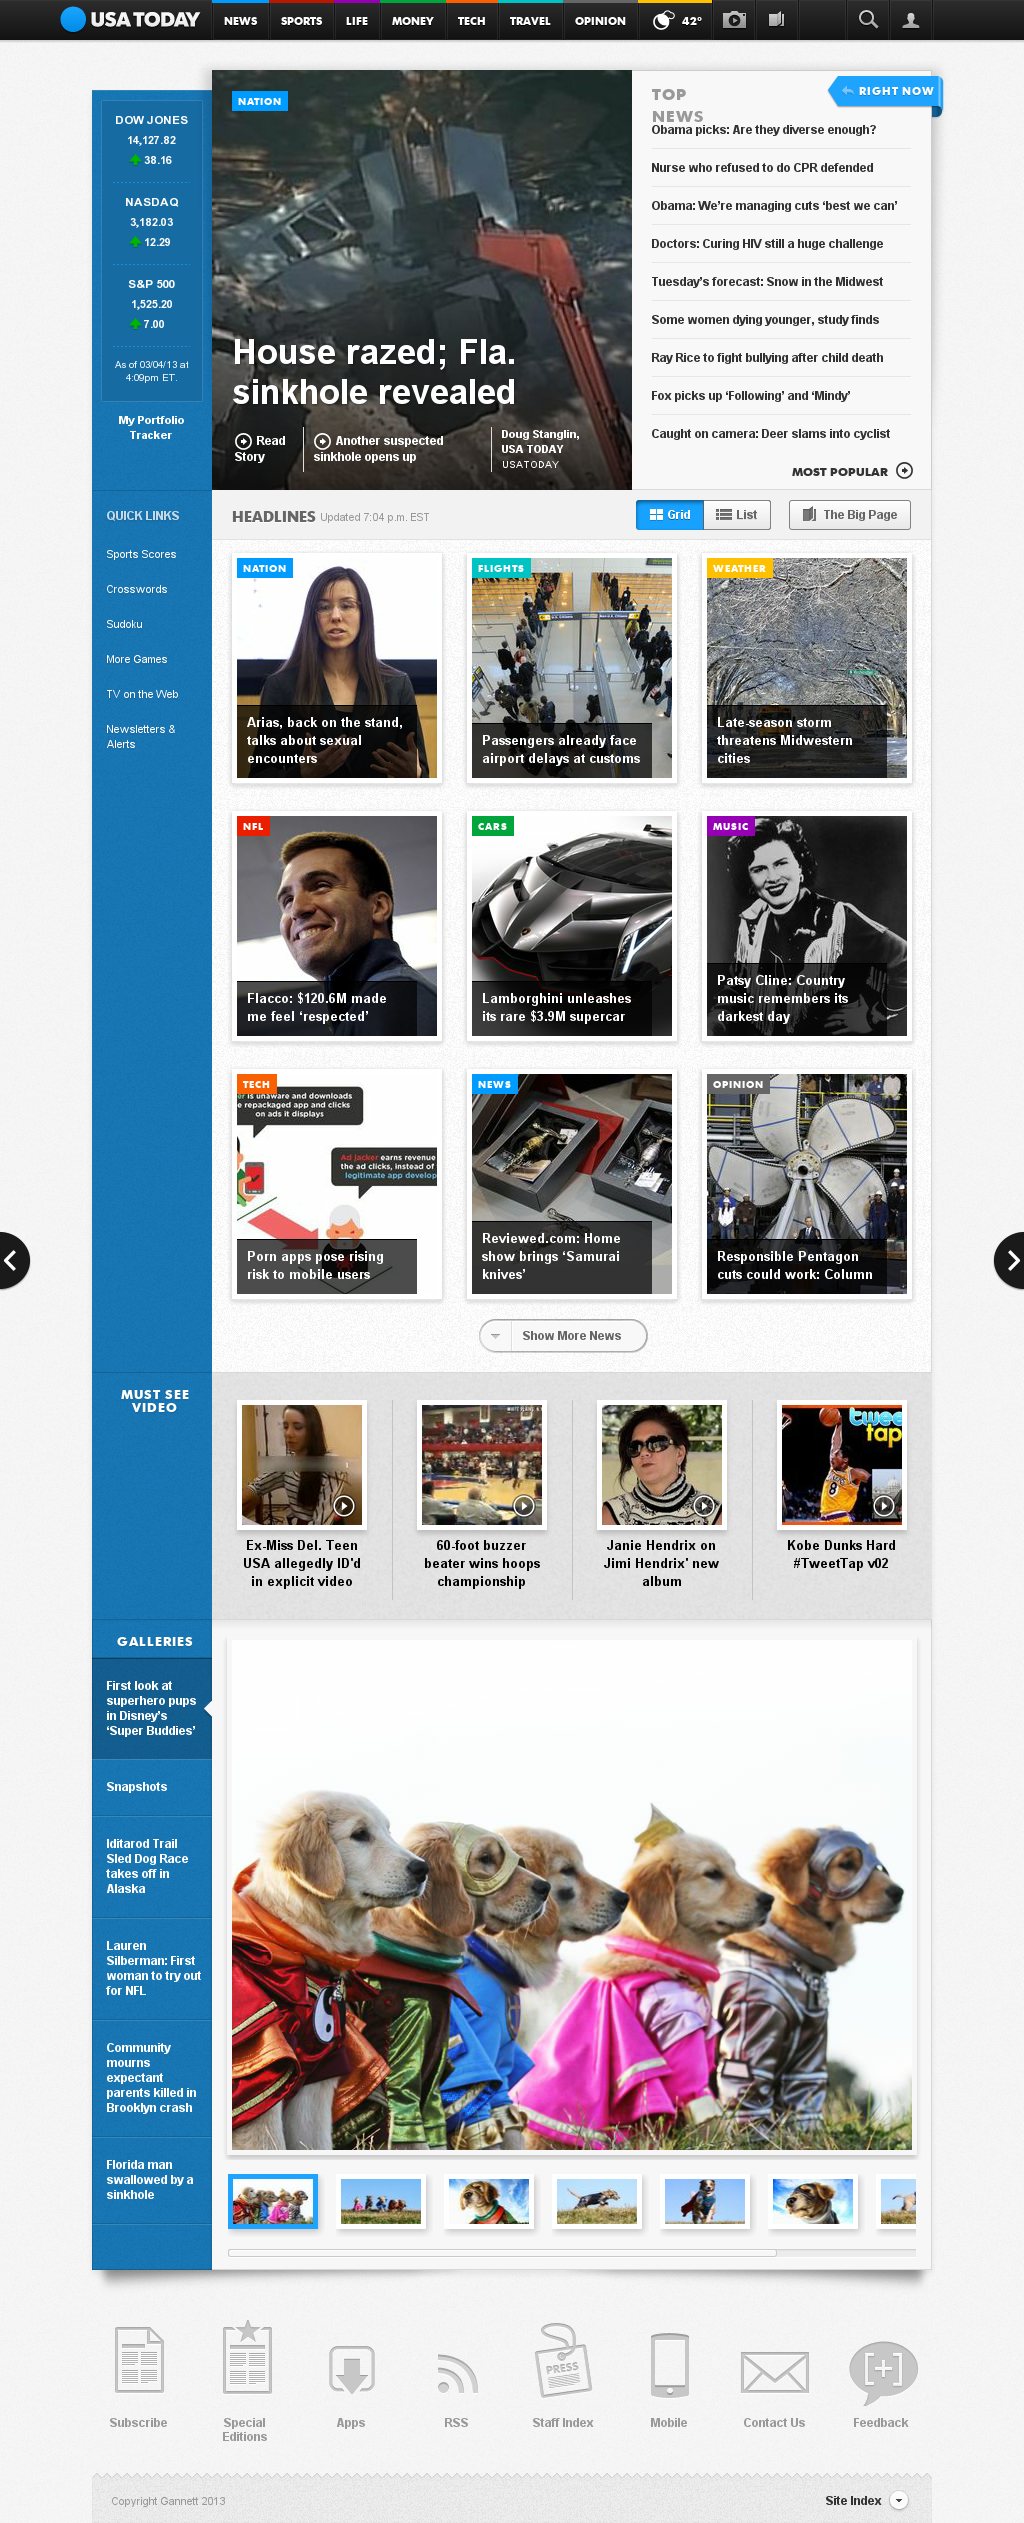 USA Today at Tuesday March 5, 2013, 12:26 a.m. UTC